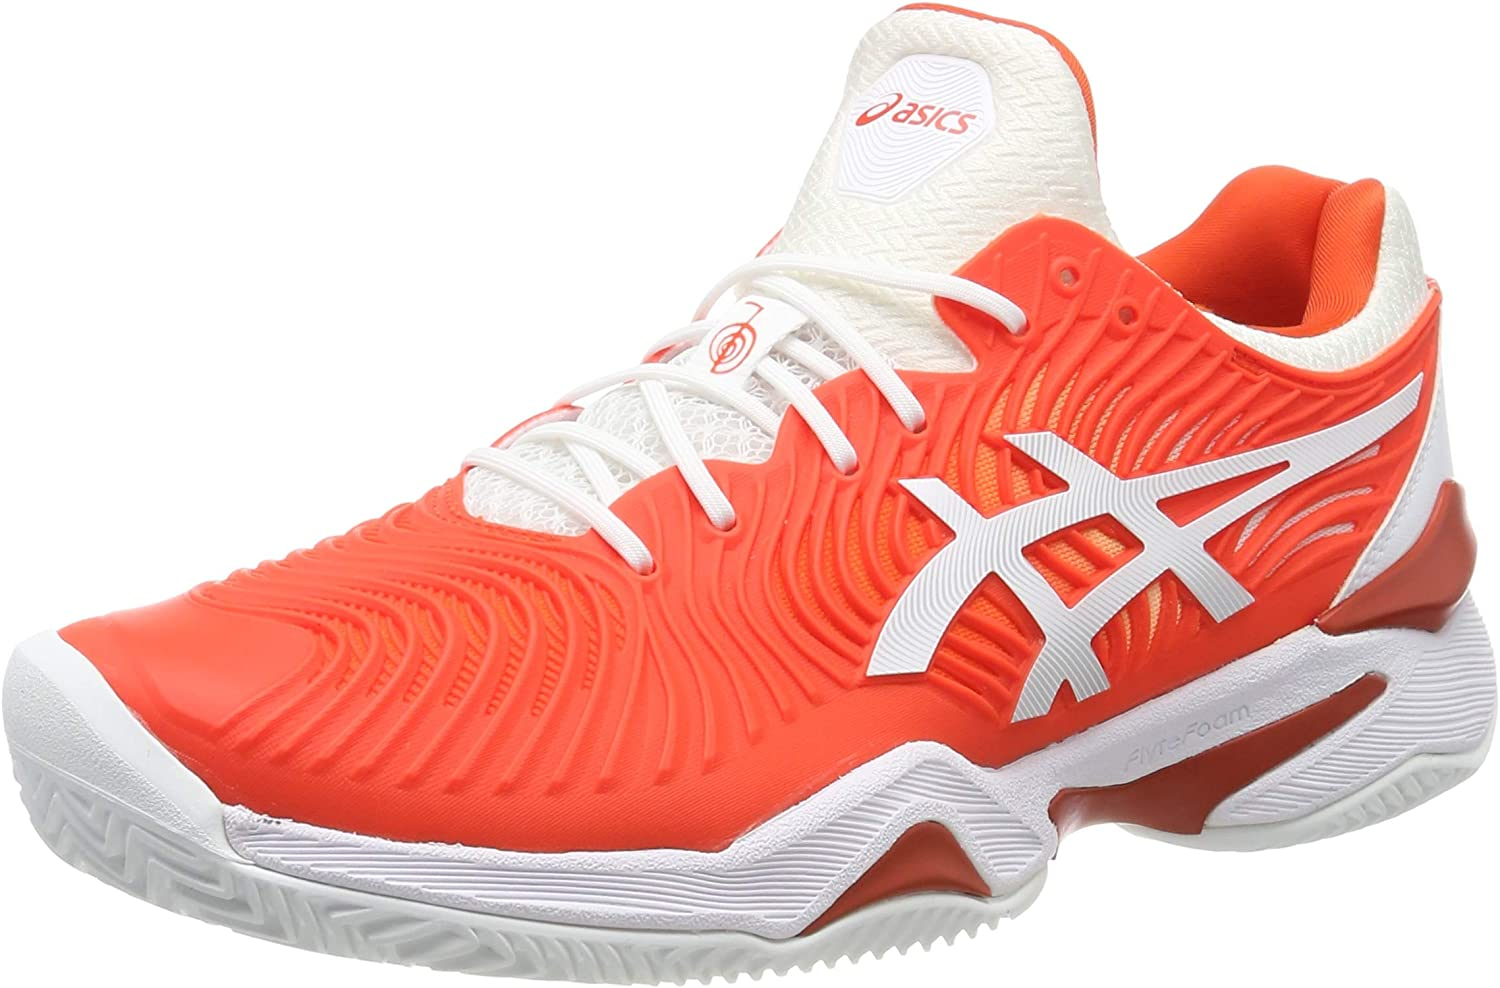 Asics Court FF Novak Clay, Zapatillas de Tenis para Hombre, Multicolor (Cherry Tomato/White 800), 44.5 EU: Amazon.es: Zapatos y complementos